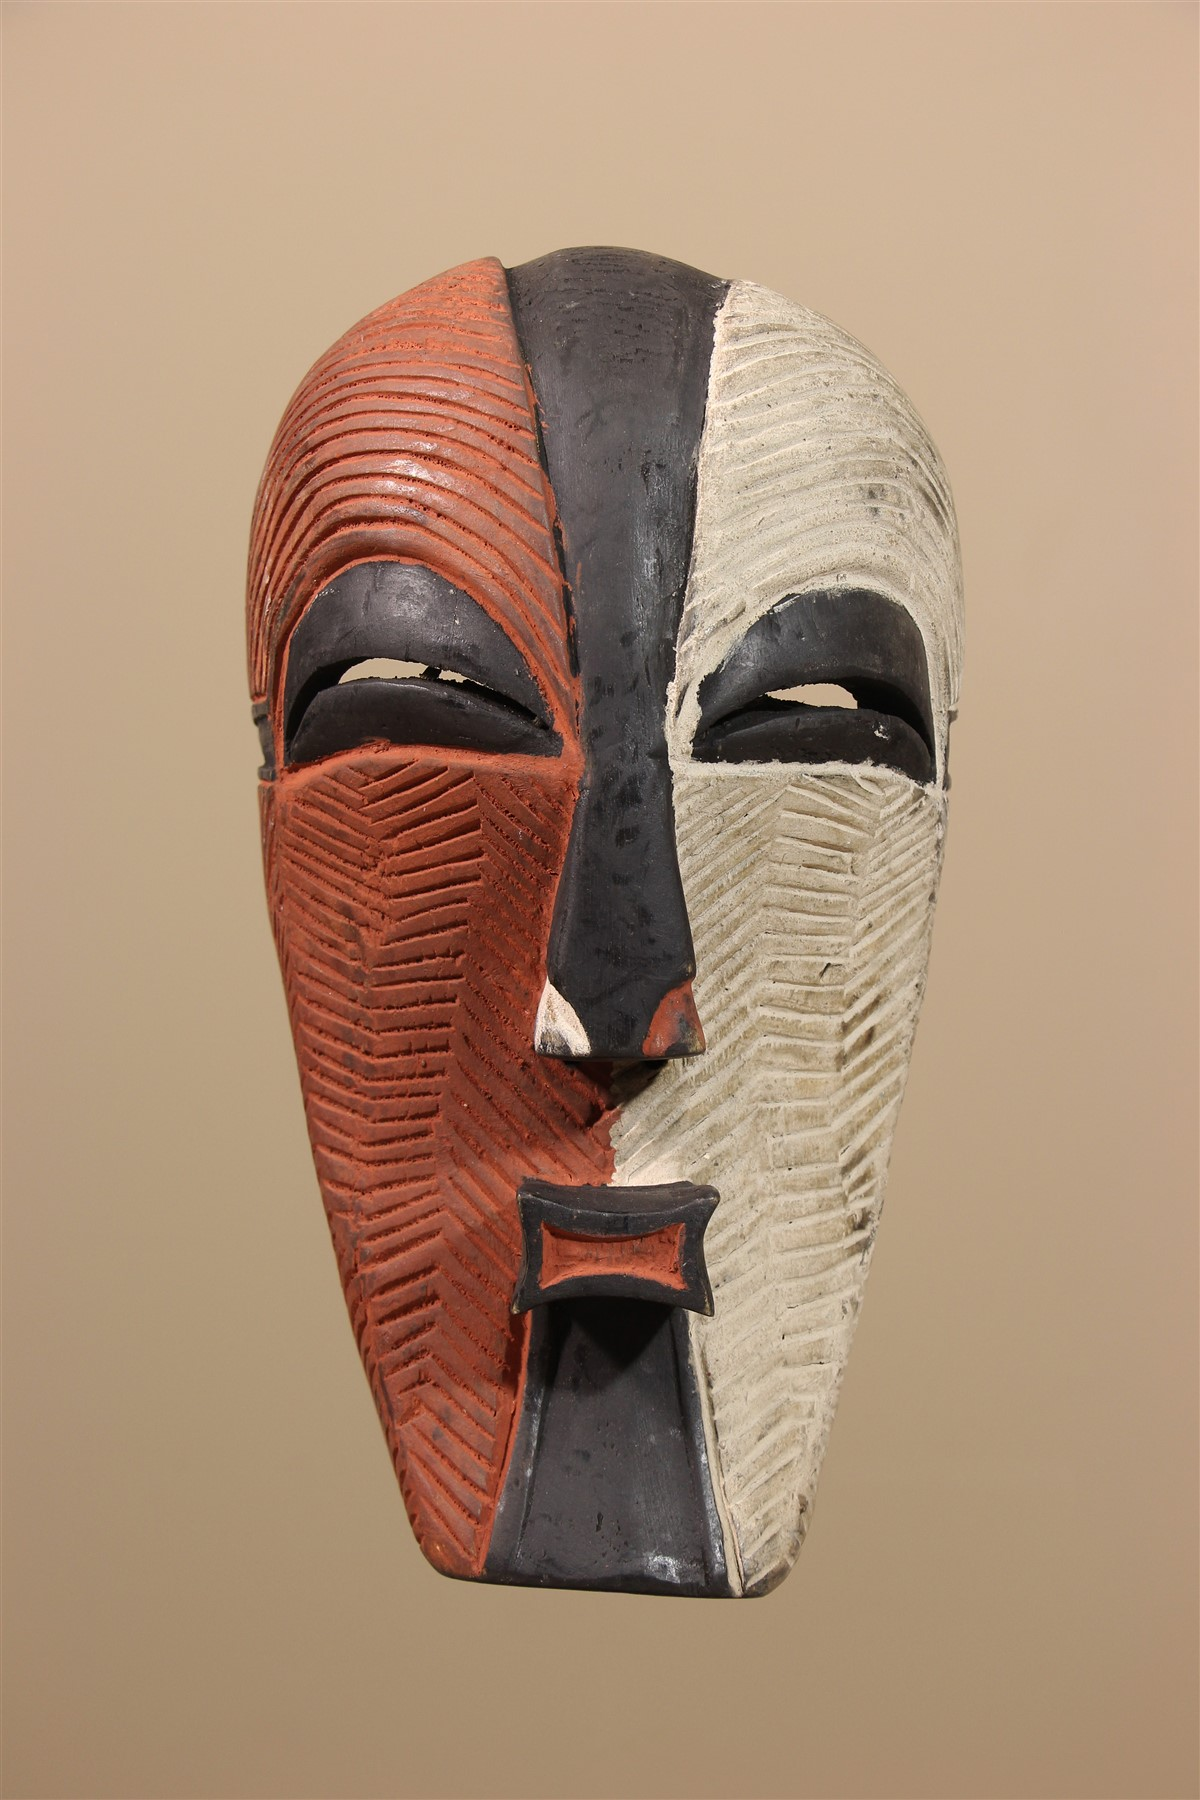 Masque africain Luba - Déco africaine - Art africain traditionnel